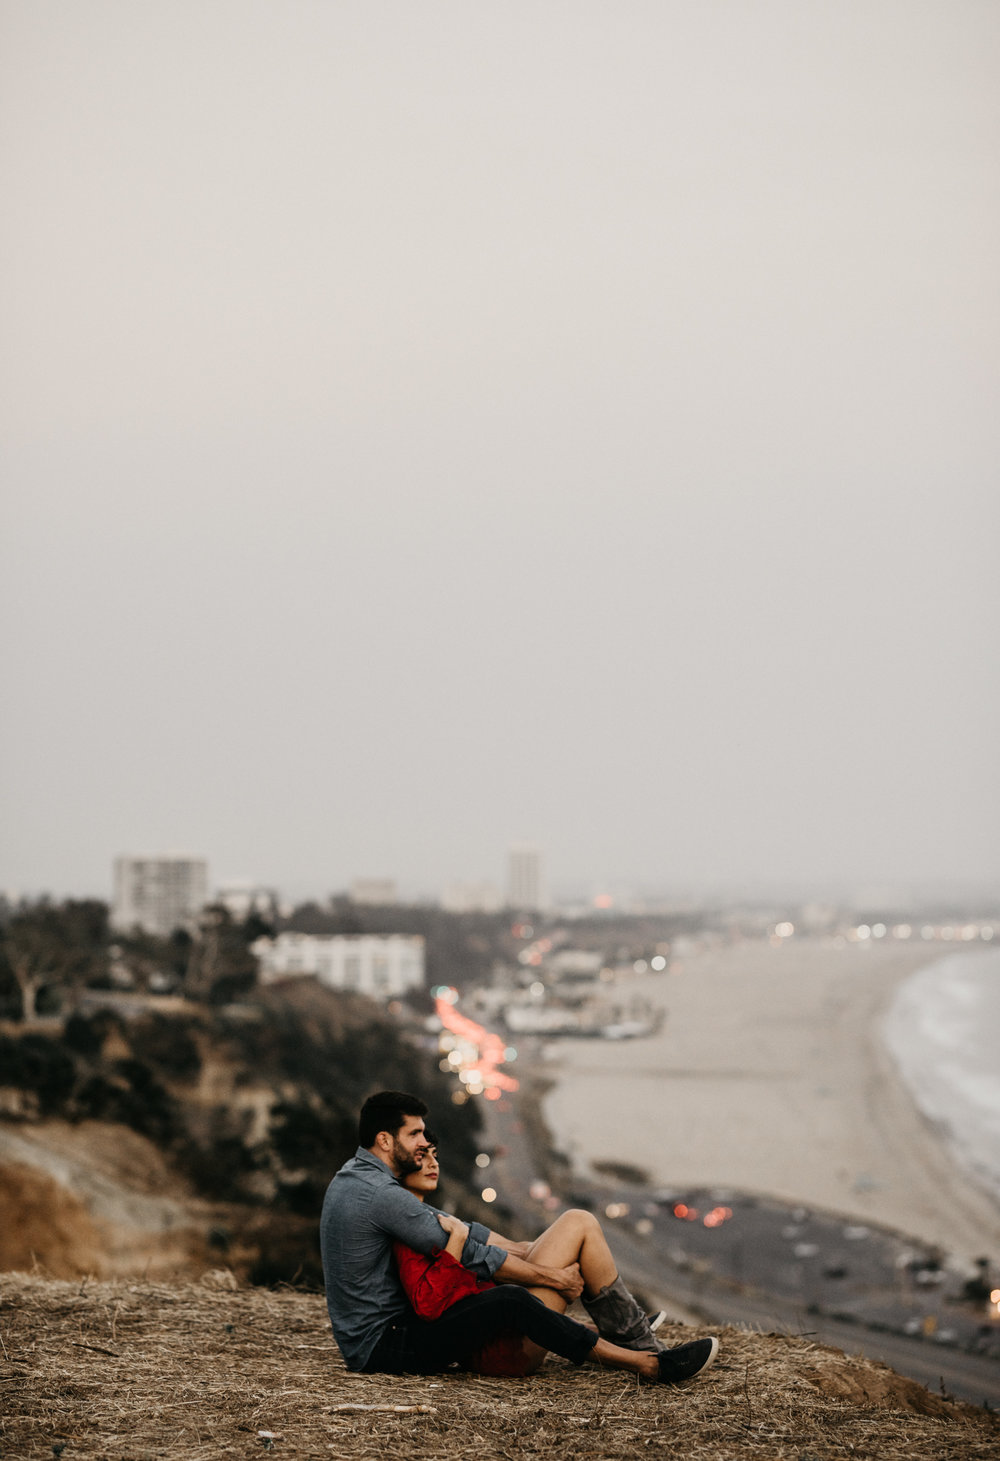 Isaiah + Taylor Photography - Santa Monica Engagement Session, Los Angeles Wedding Photographer-061.jpg